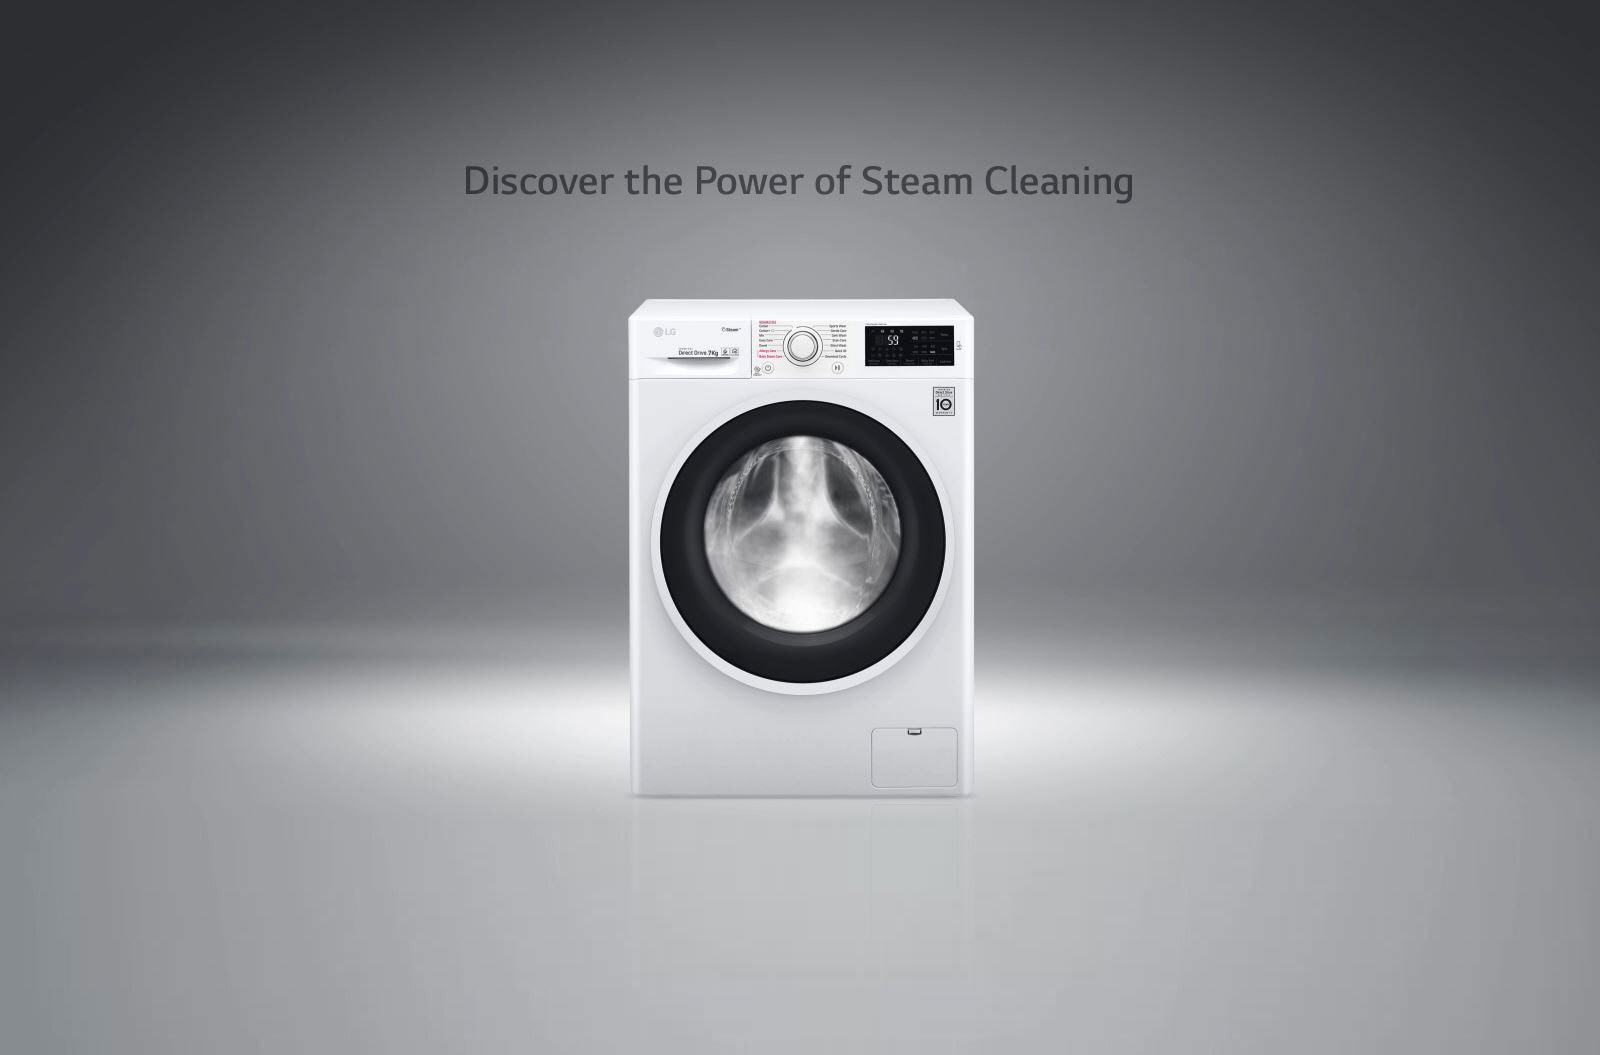 F2J6HGP2S_Discover_the_power_of_steam_cleaning_D